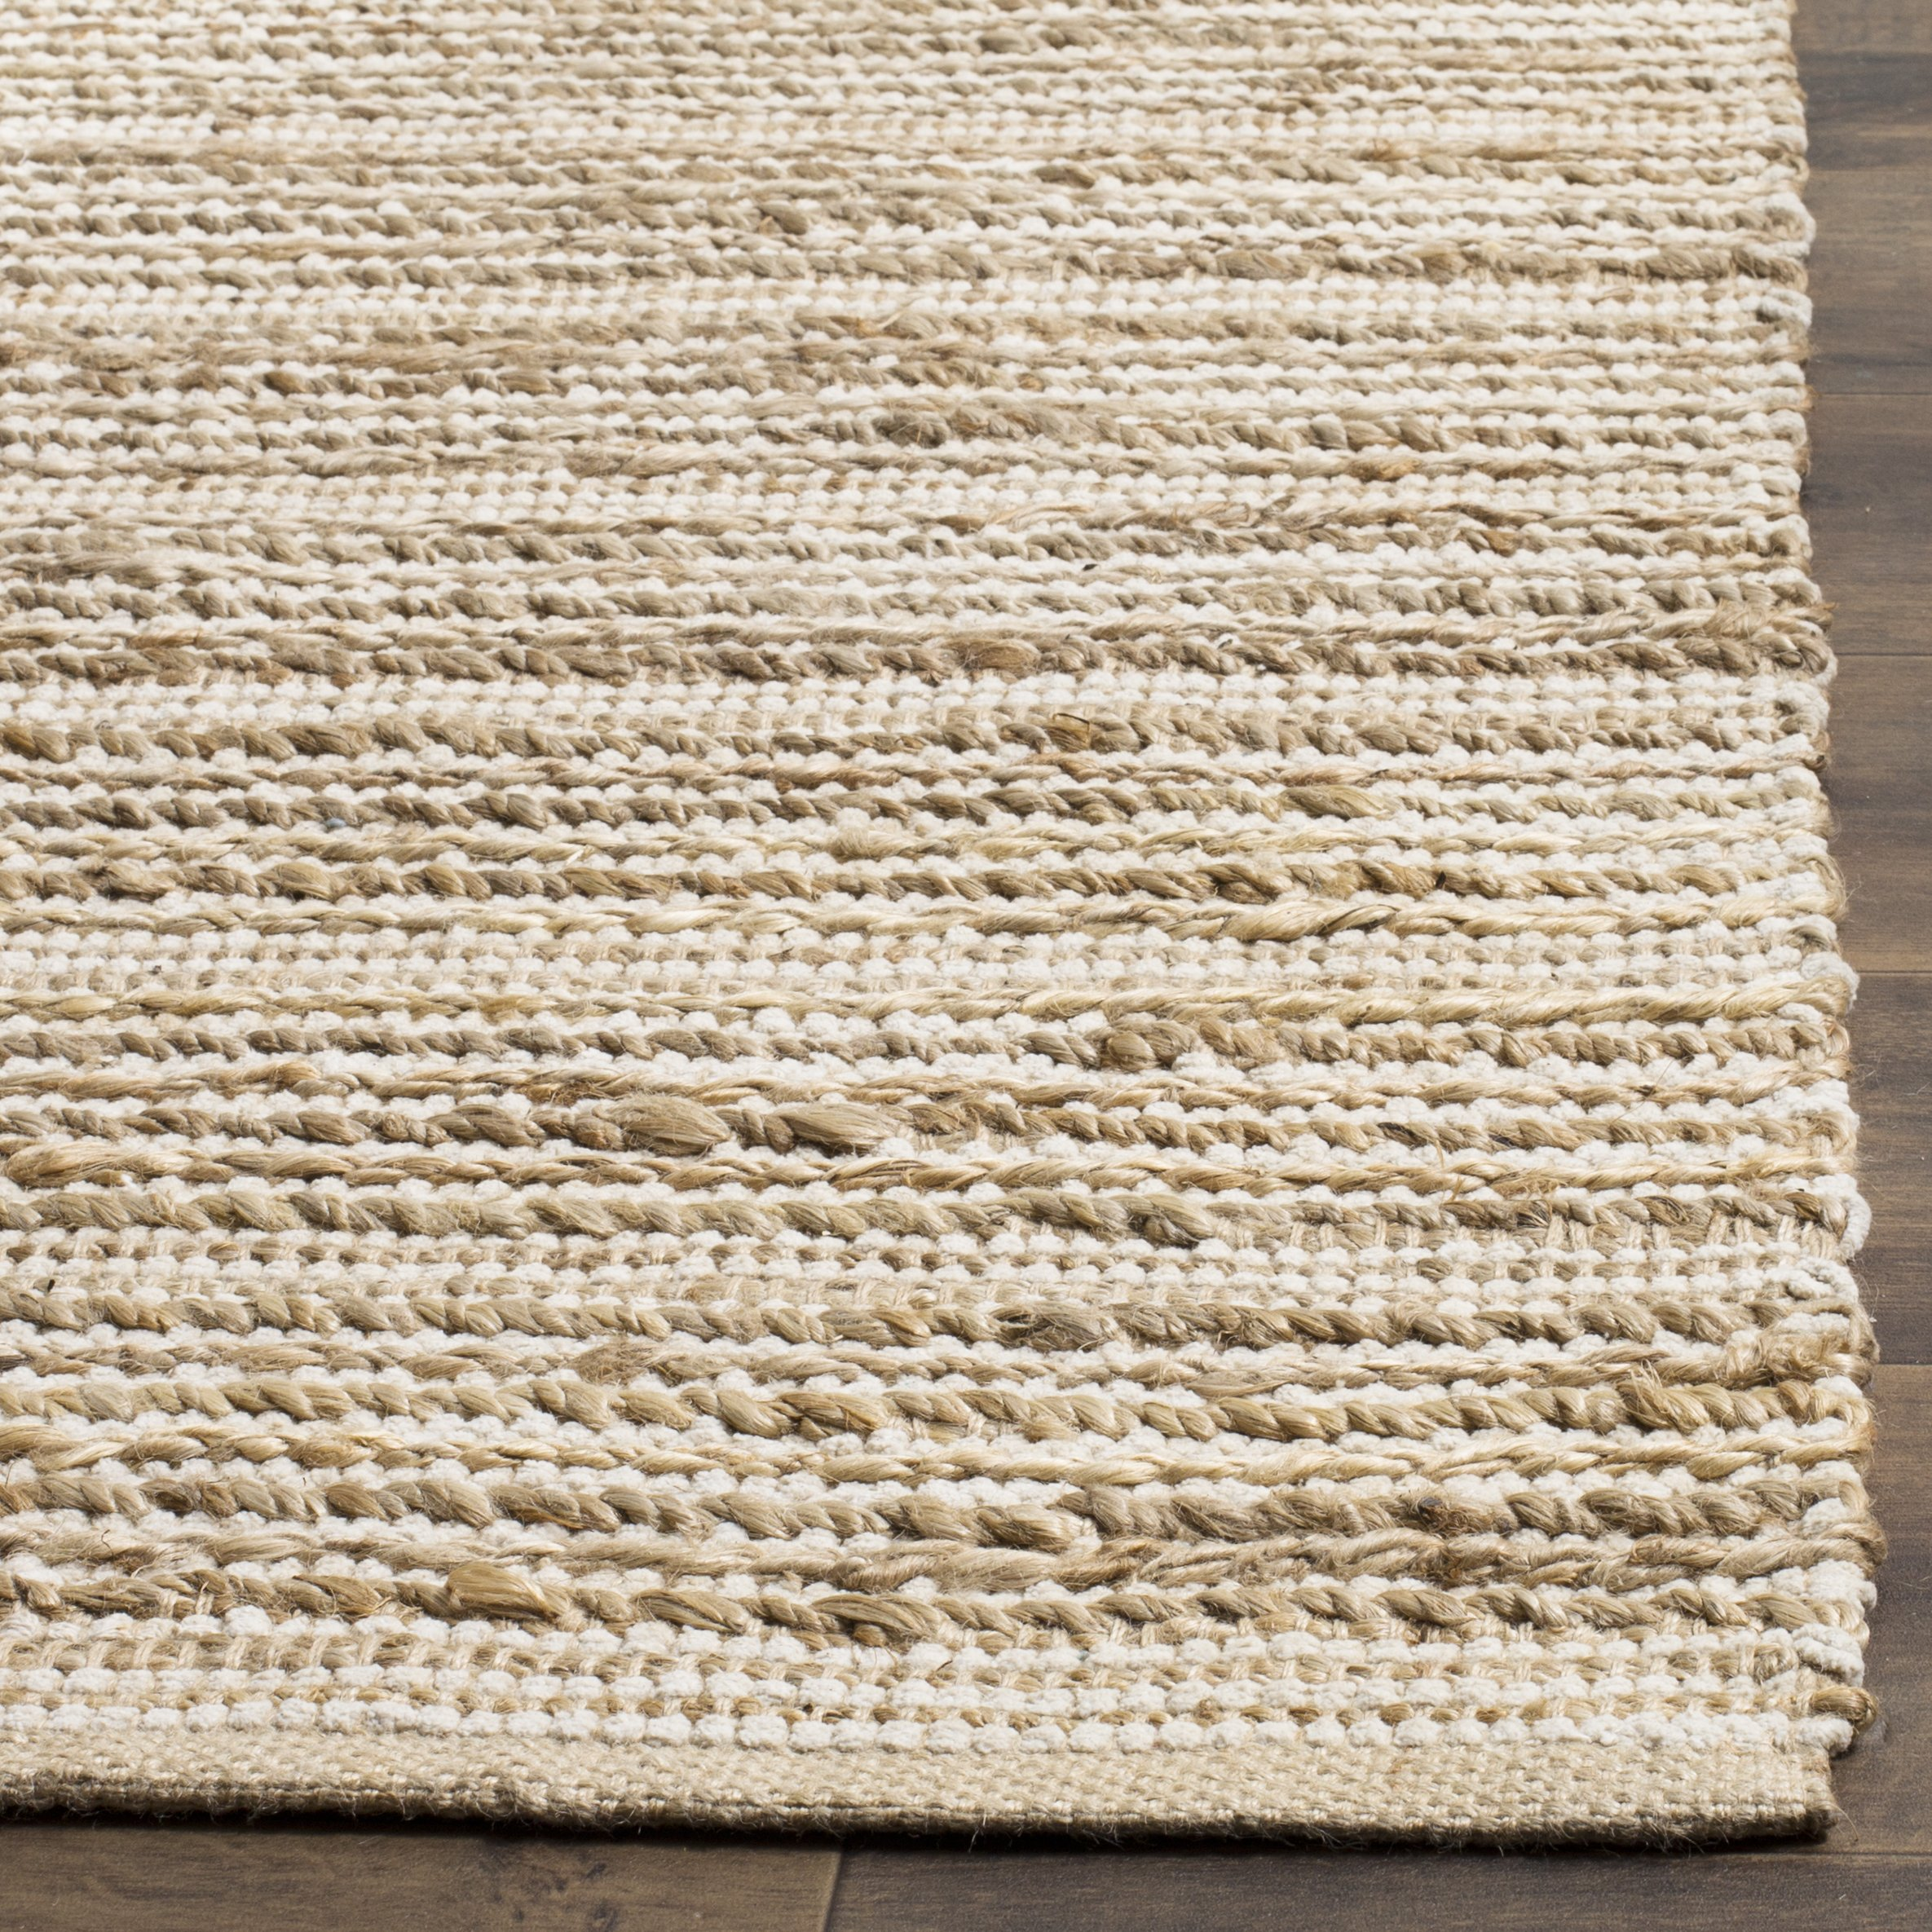 Safavieh Cape Cod Collection CAP851G Hand Woven Natural Ivory Jute Cotton Runner (2'3'' x 8') by Safavieh